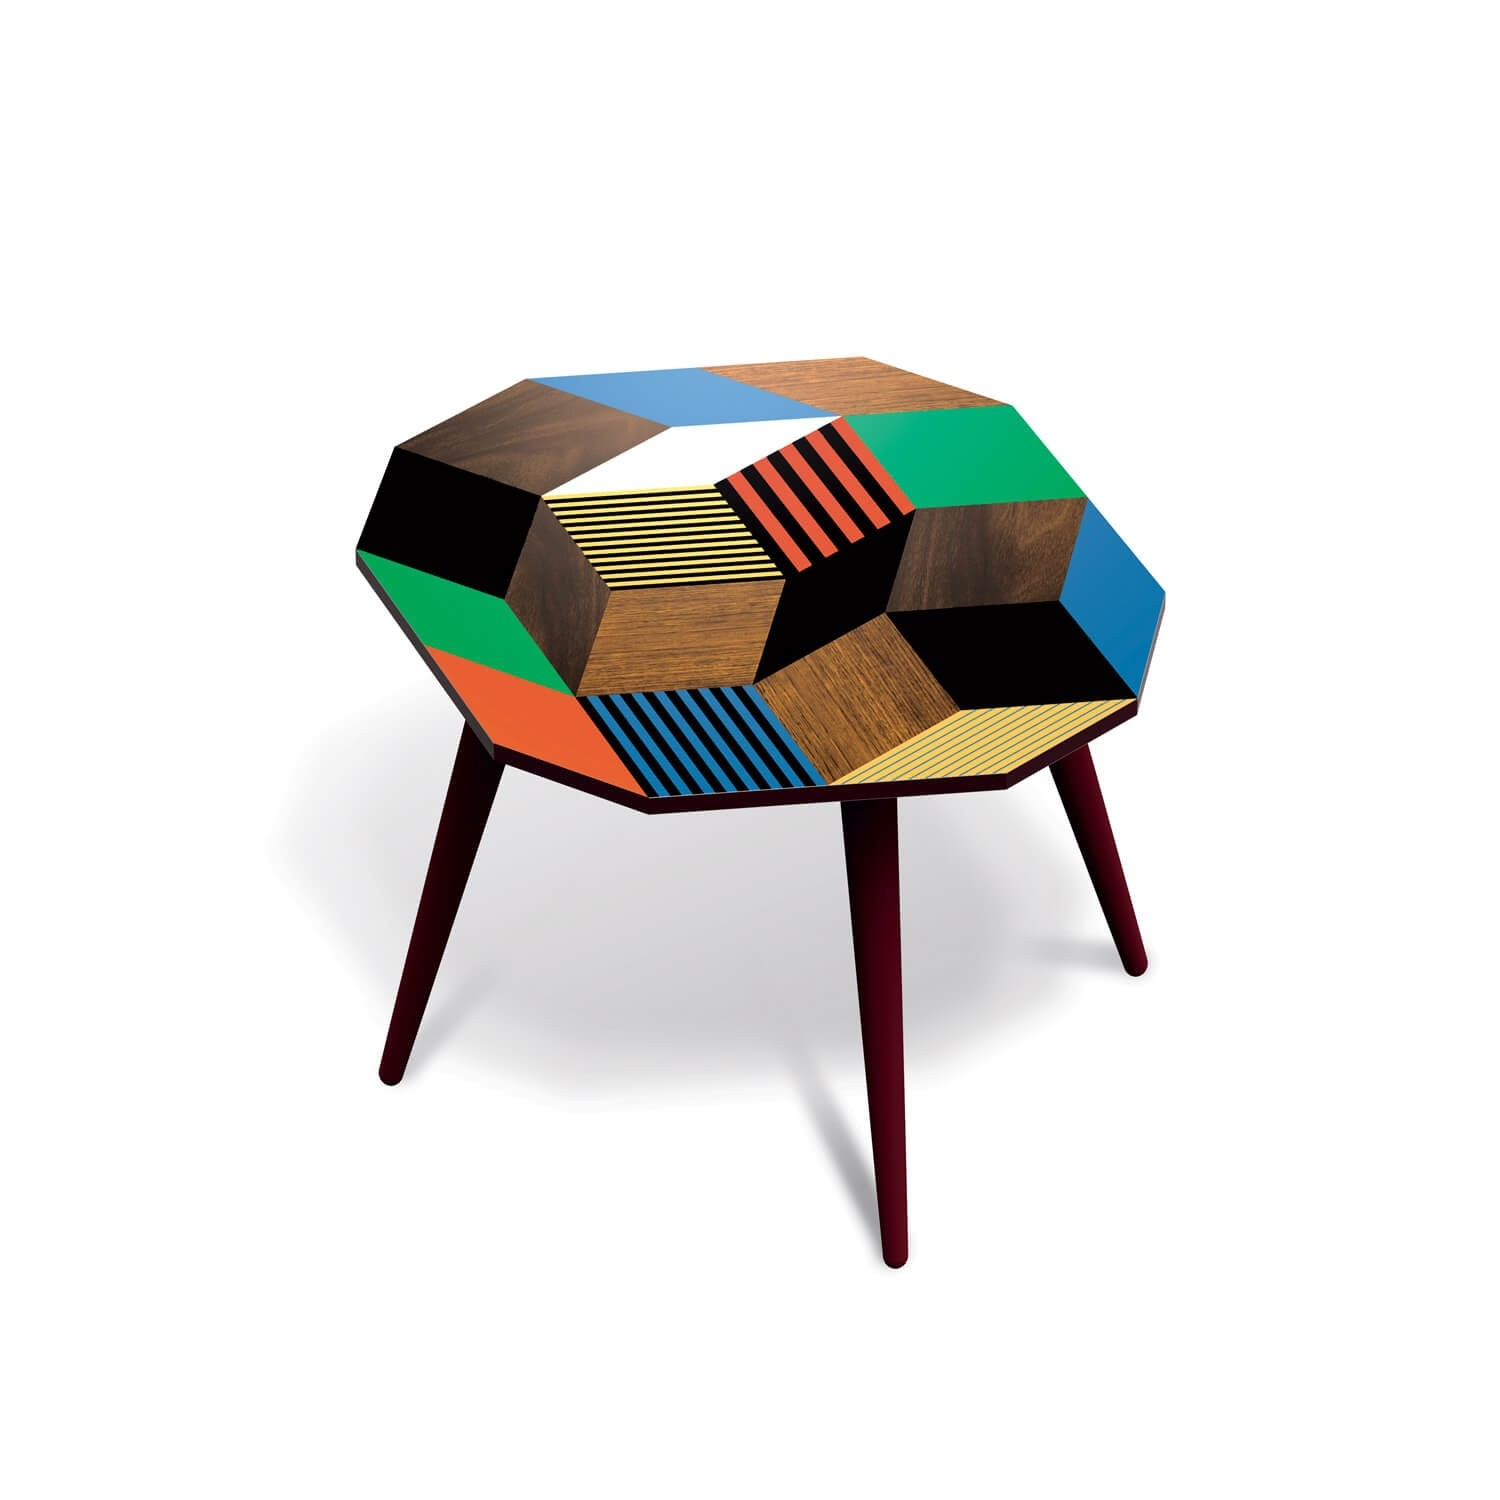 Table d'appoint Crazy Wood Medium, motif Penrose, design IchetKar édition Bazartherapy